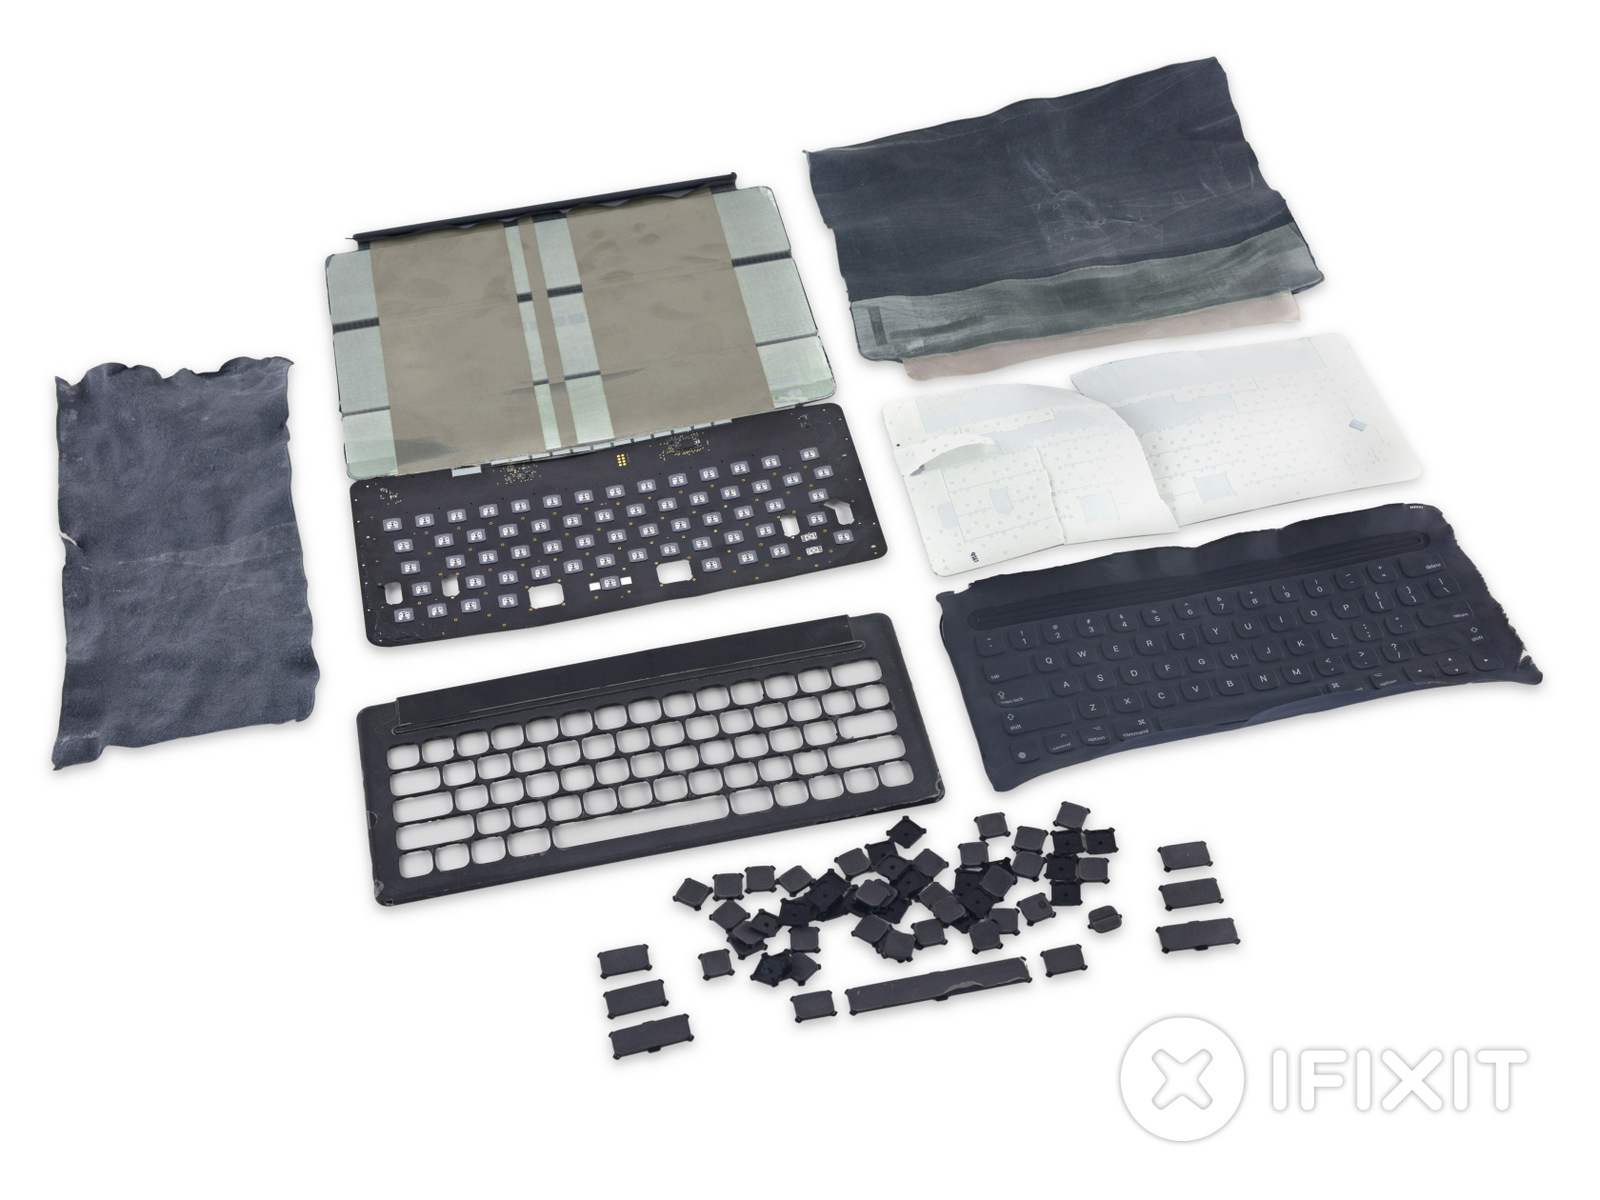 A teardown of the Apple Smart Keyboard shows the iPad Pro accessory is definitely durable